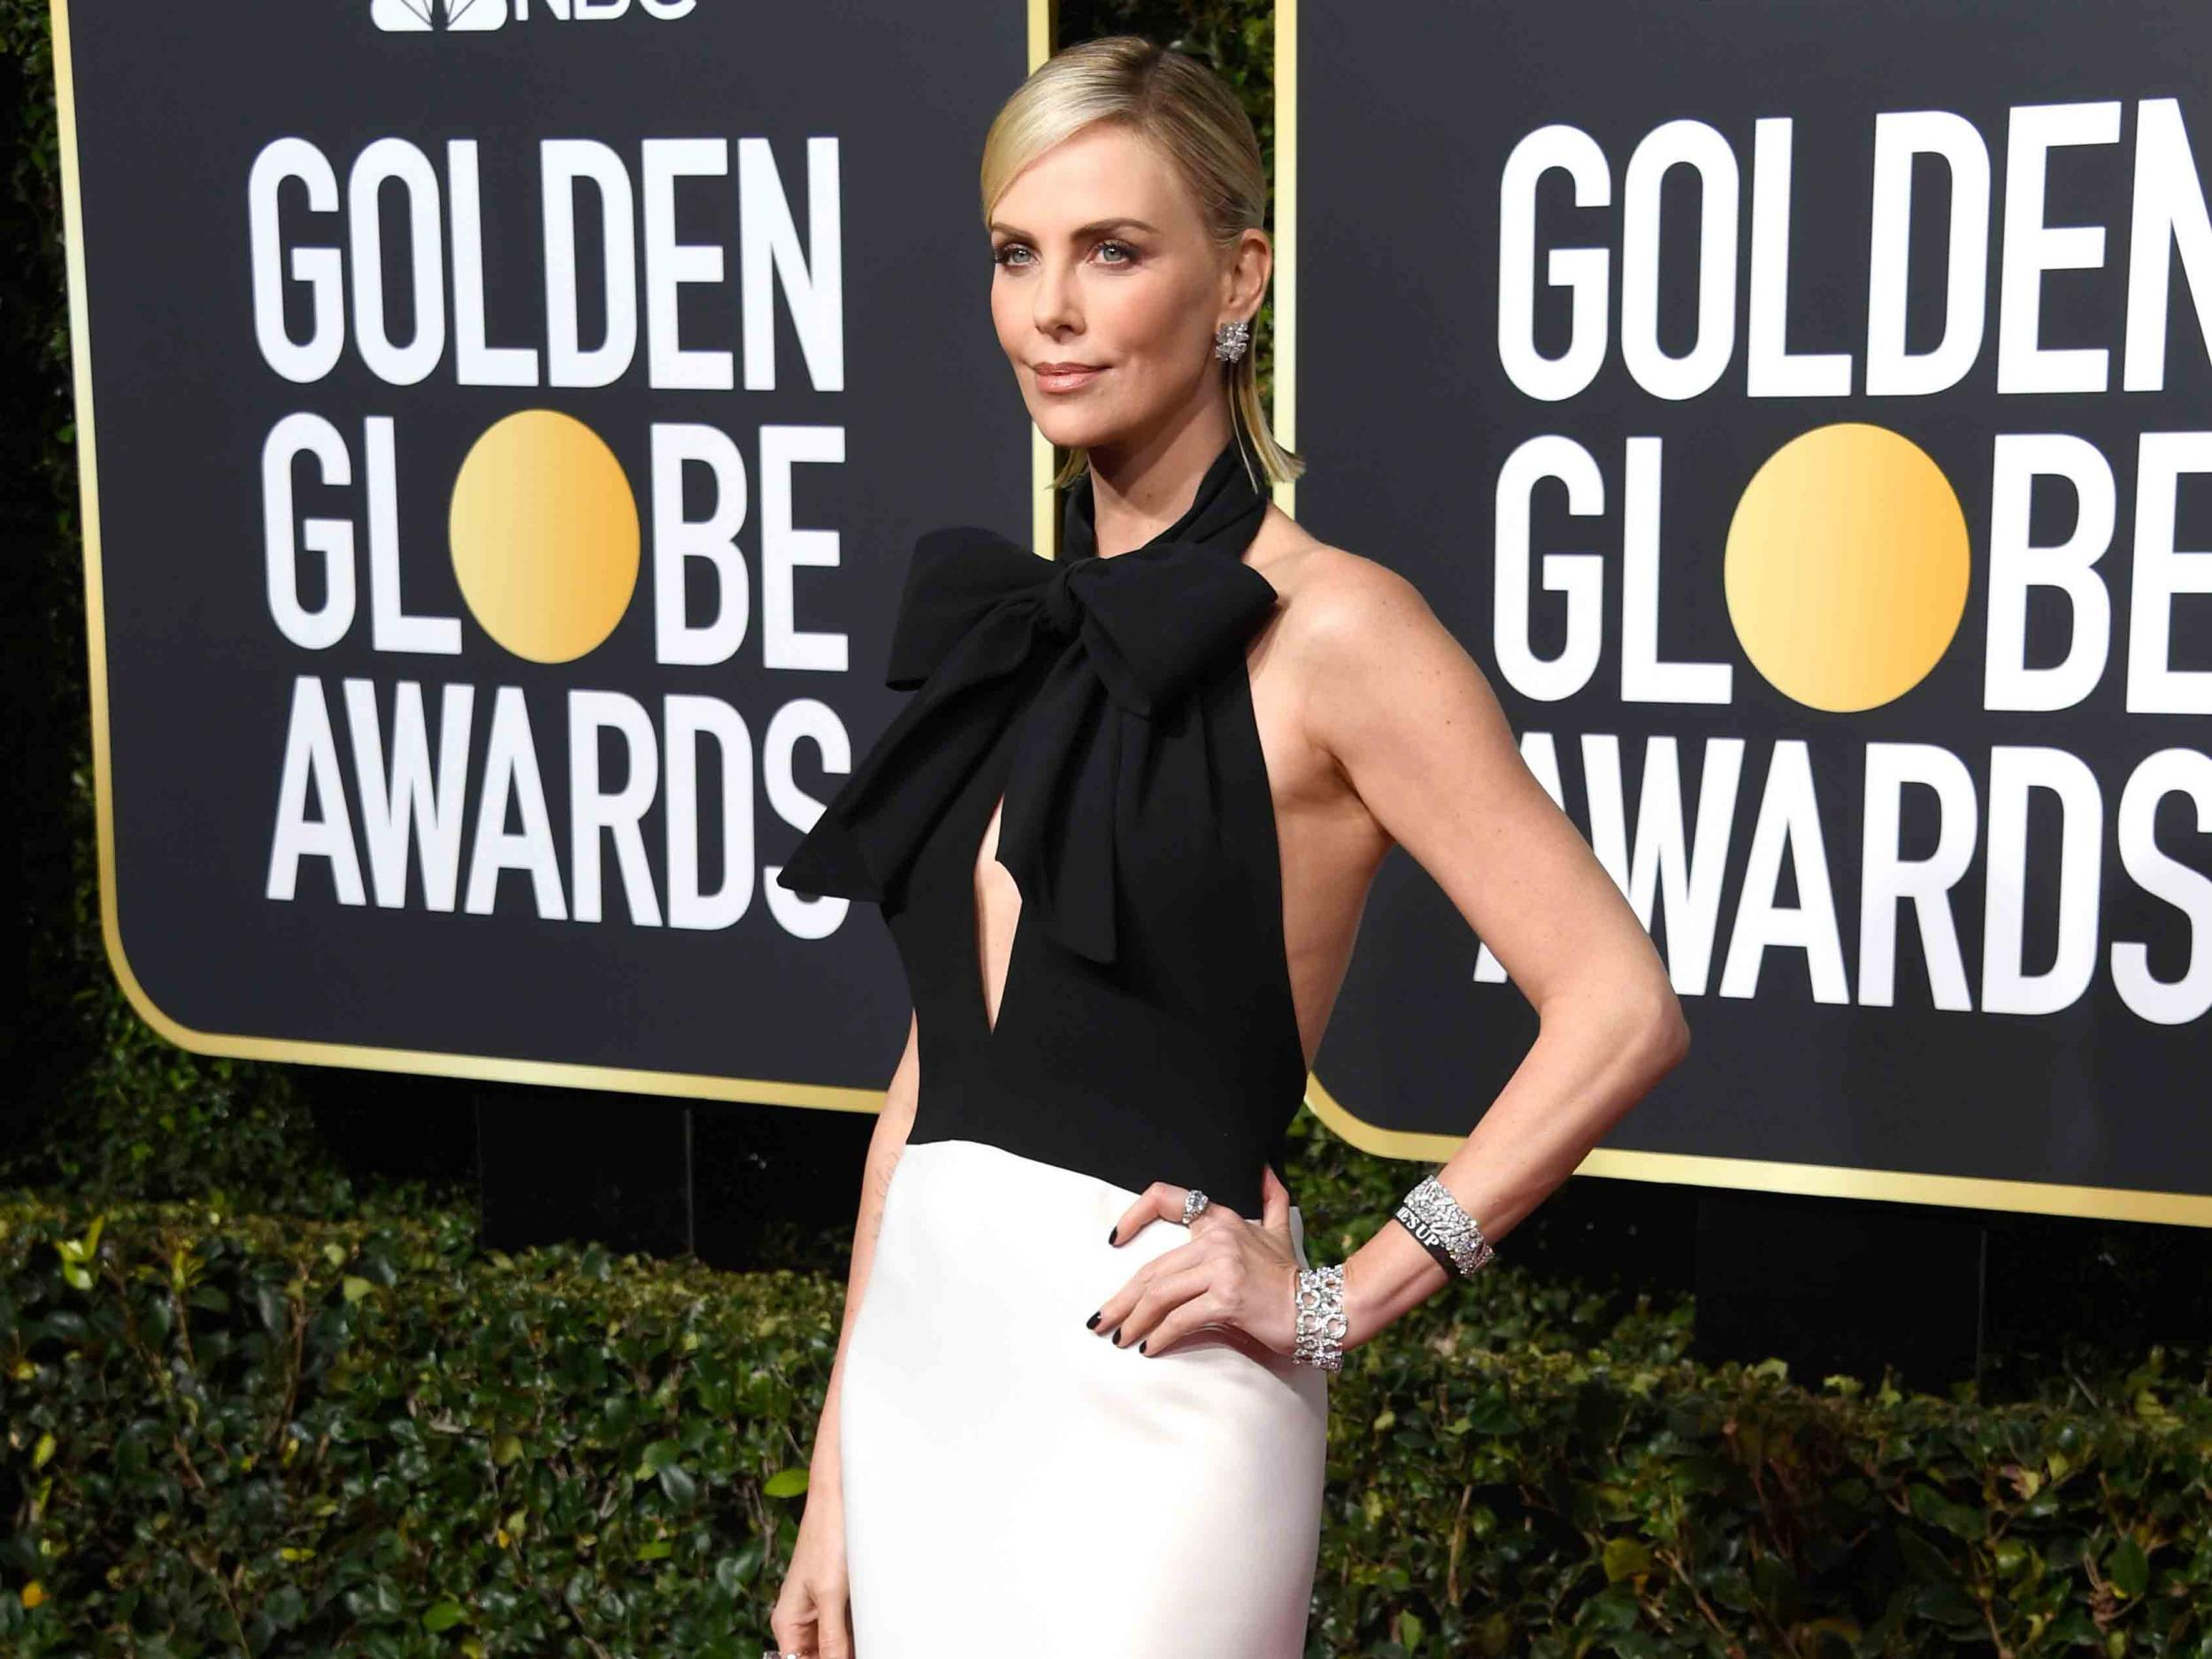 Golden Globes 2019: Stars wear Time's Up bracelets and pins to fight sexual harassment